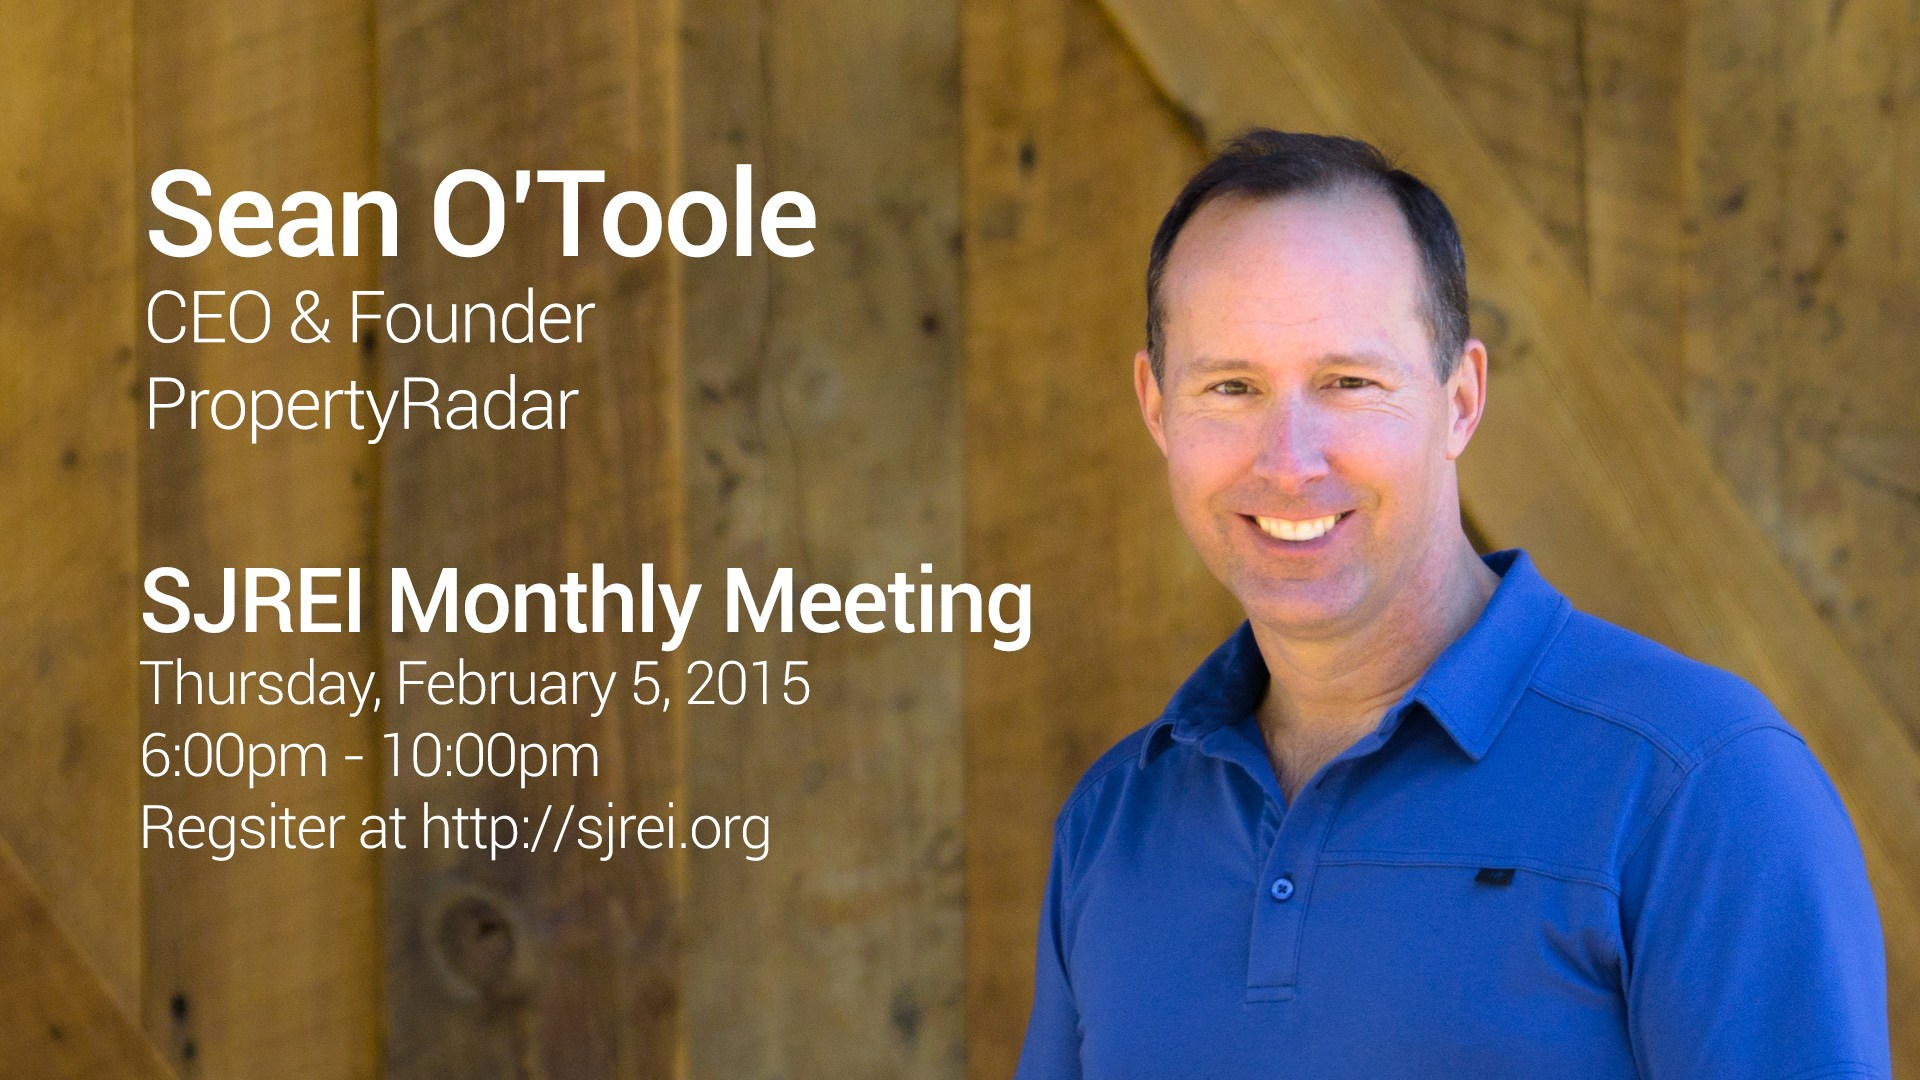 PropertyRadar CEO/Founder Sean O'Toole is speaking at the February 5, 2015 SJREI monthly meeting.